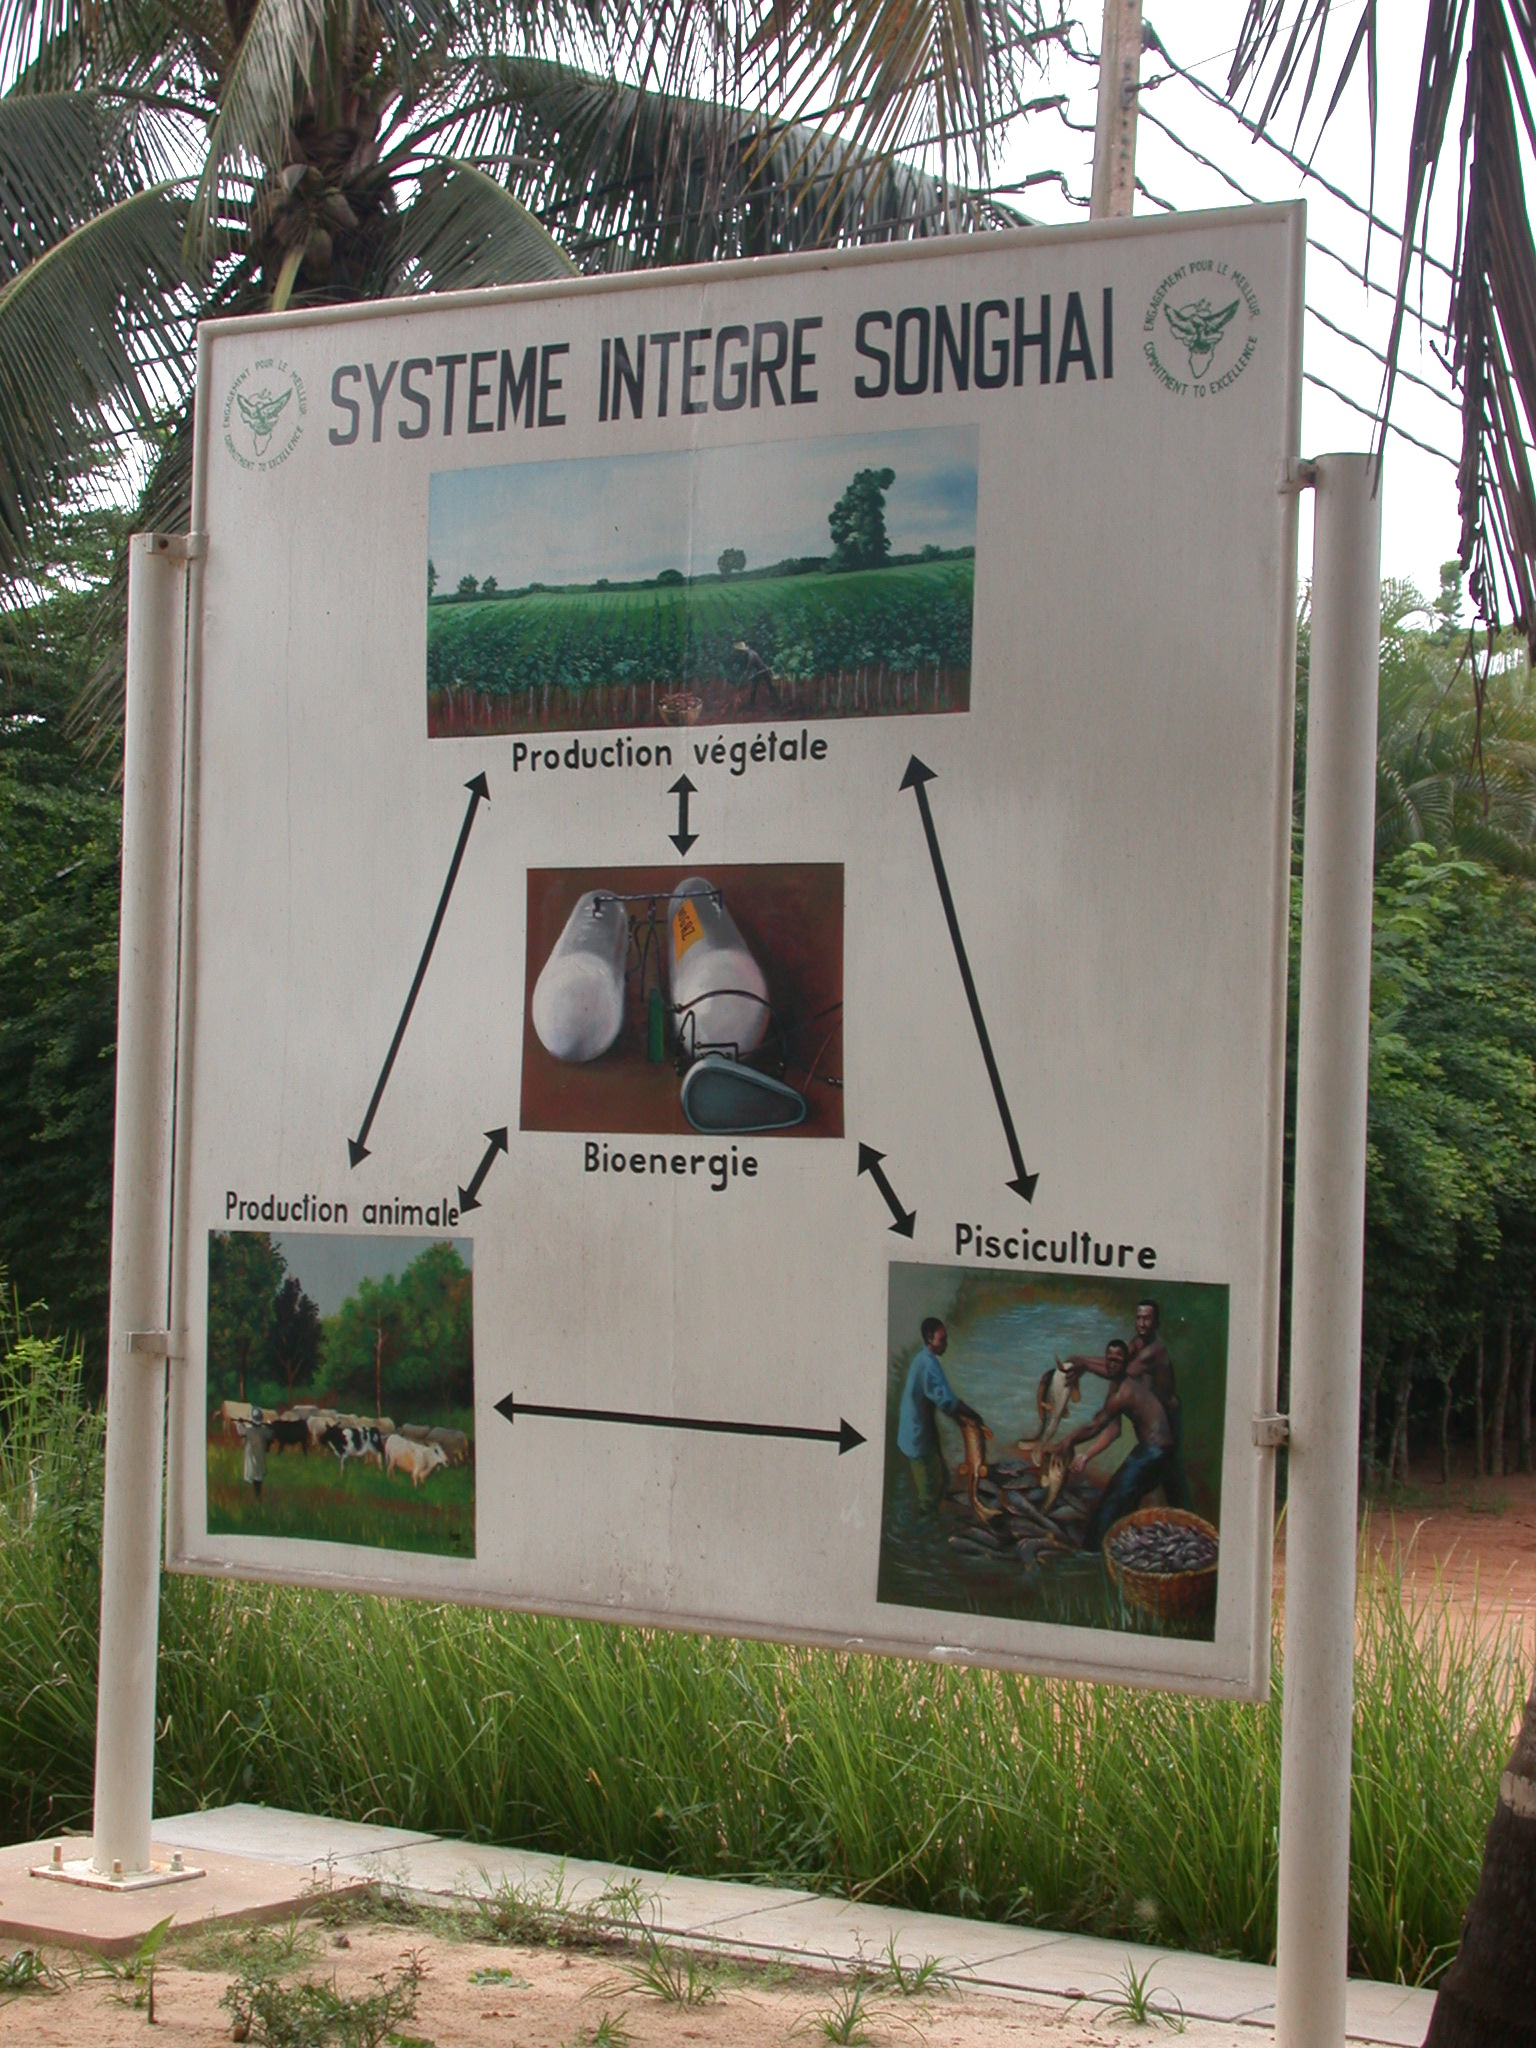 Songhai Integral System Sign, Centre Songhaï, Porto Novo, Benin